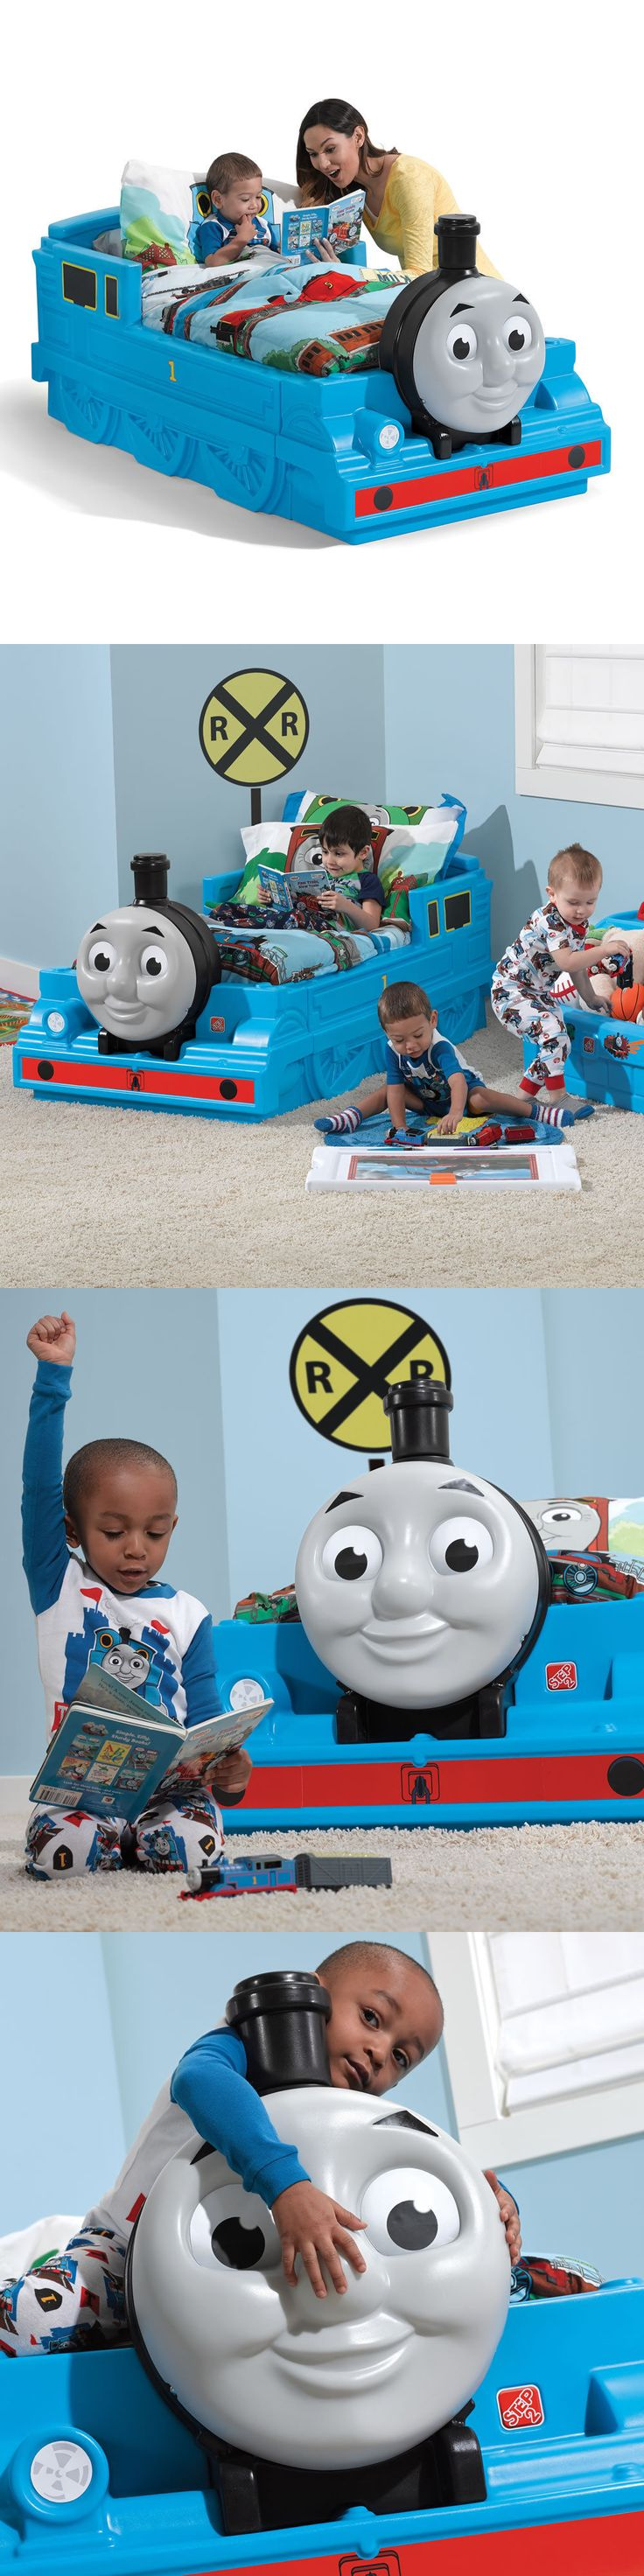 Kids Furniture: Step2 Thomas The Tank Engine™ Toddler Bed Kids Furniture BUY IT NOW ONLY: $165.99